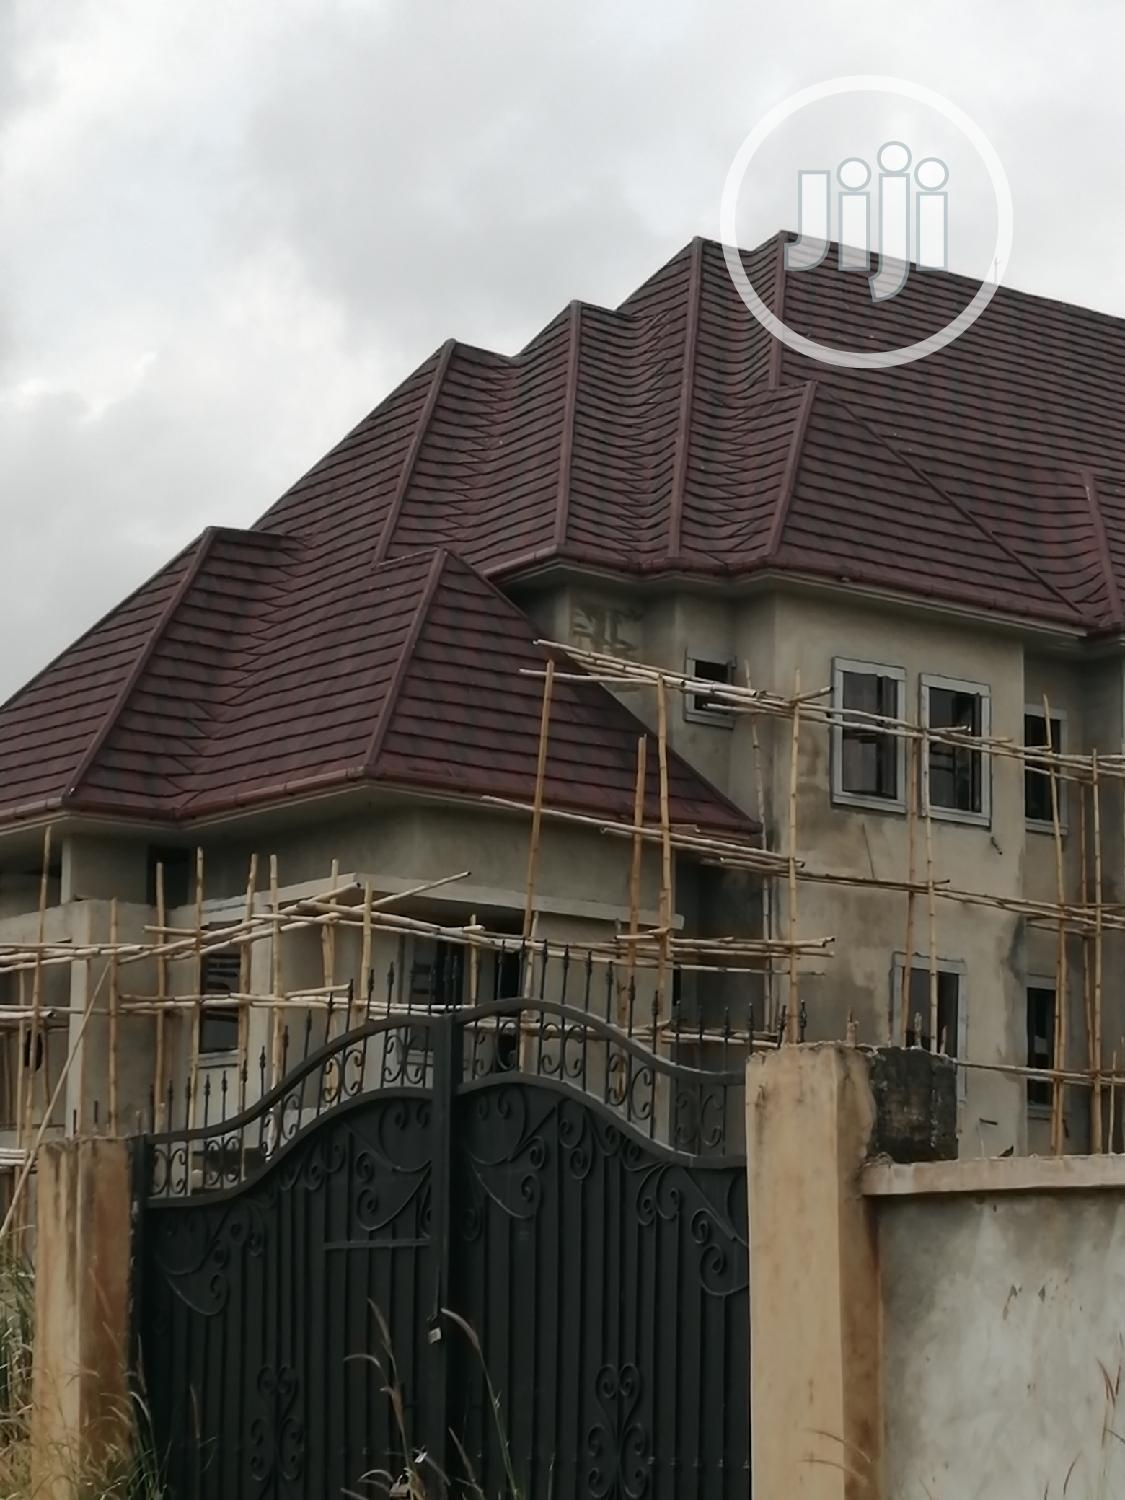 Roofing, Roof Gutter System, Stainless Railings System | Building & Trades Services for sale in Ikotun/Igando, Lagos State, Nigeria